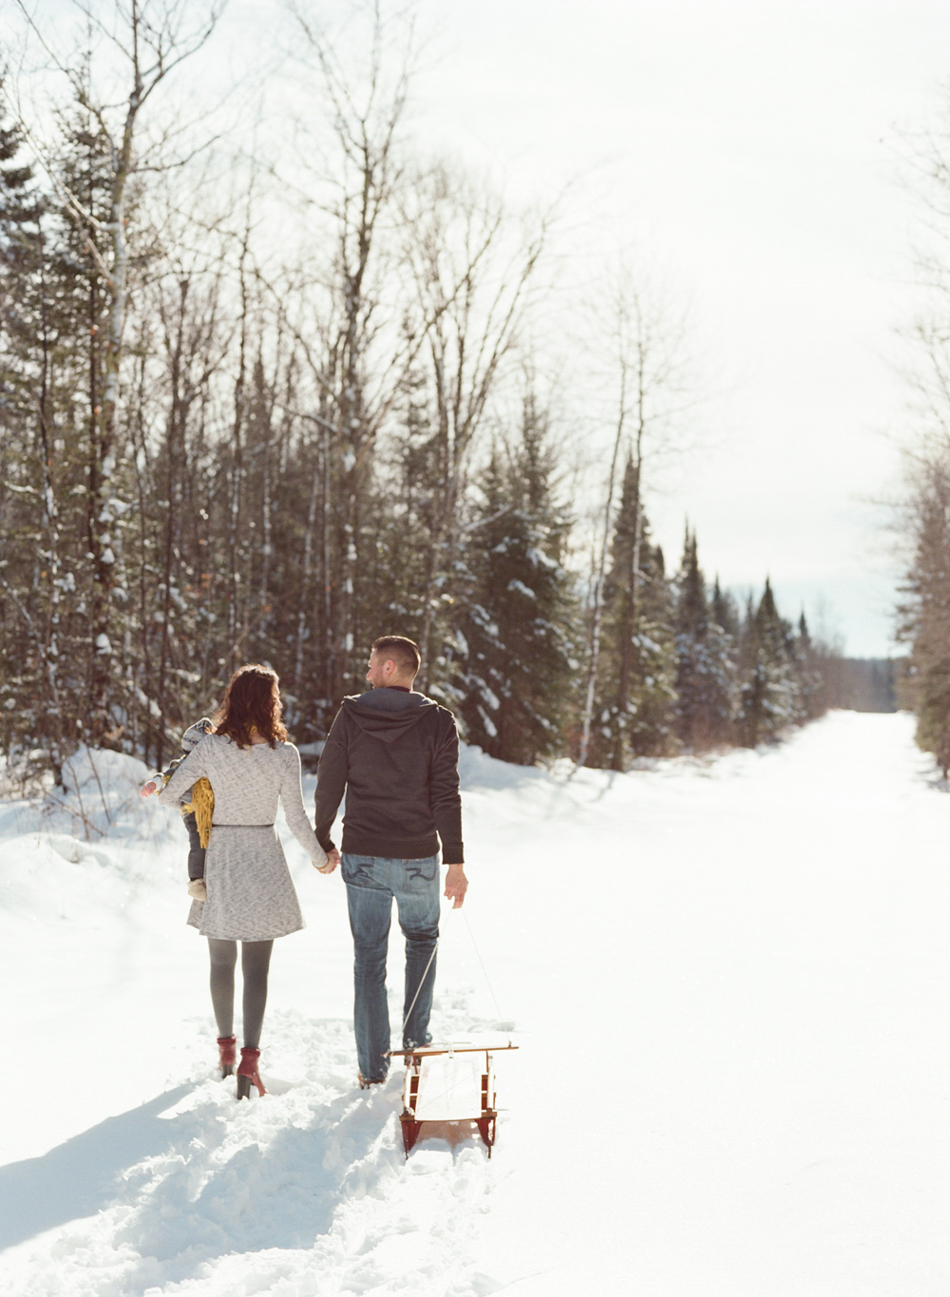 Winter_Family_Photography_Wisconsin_014.jpg